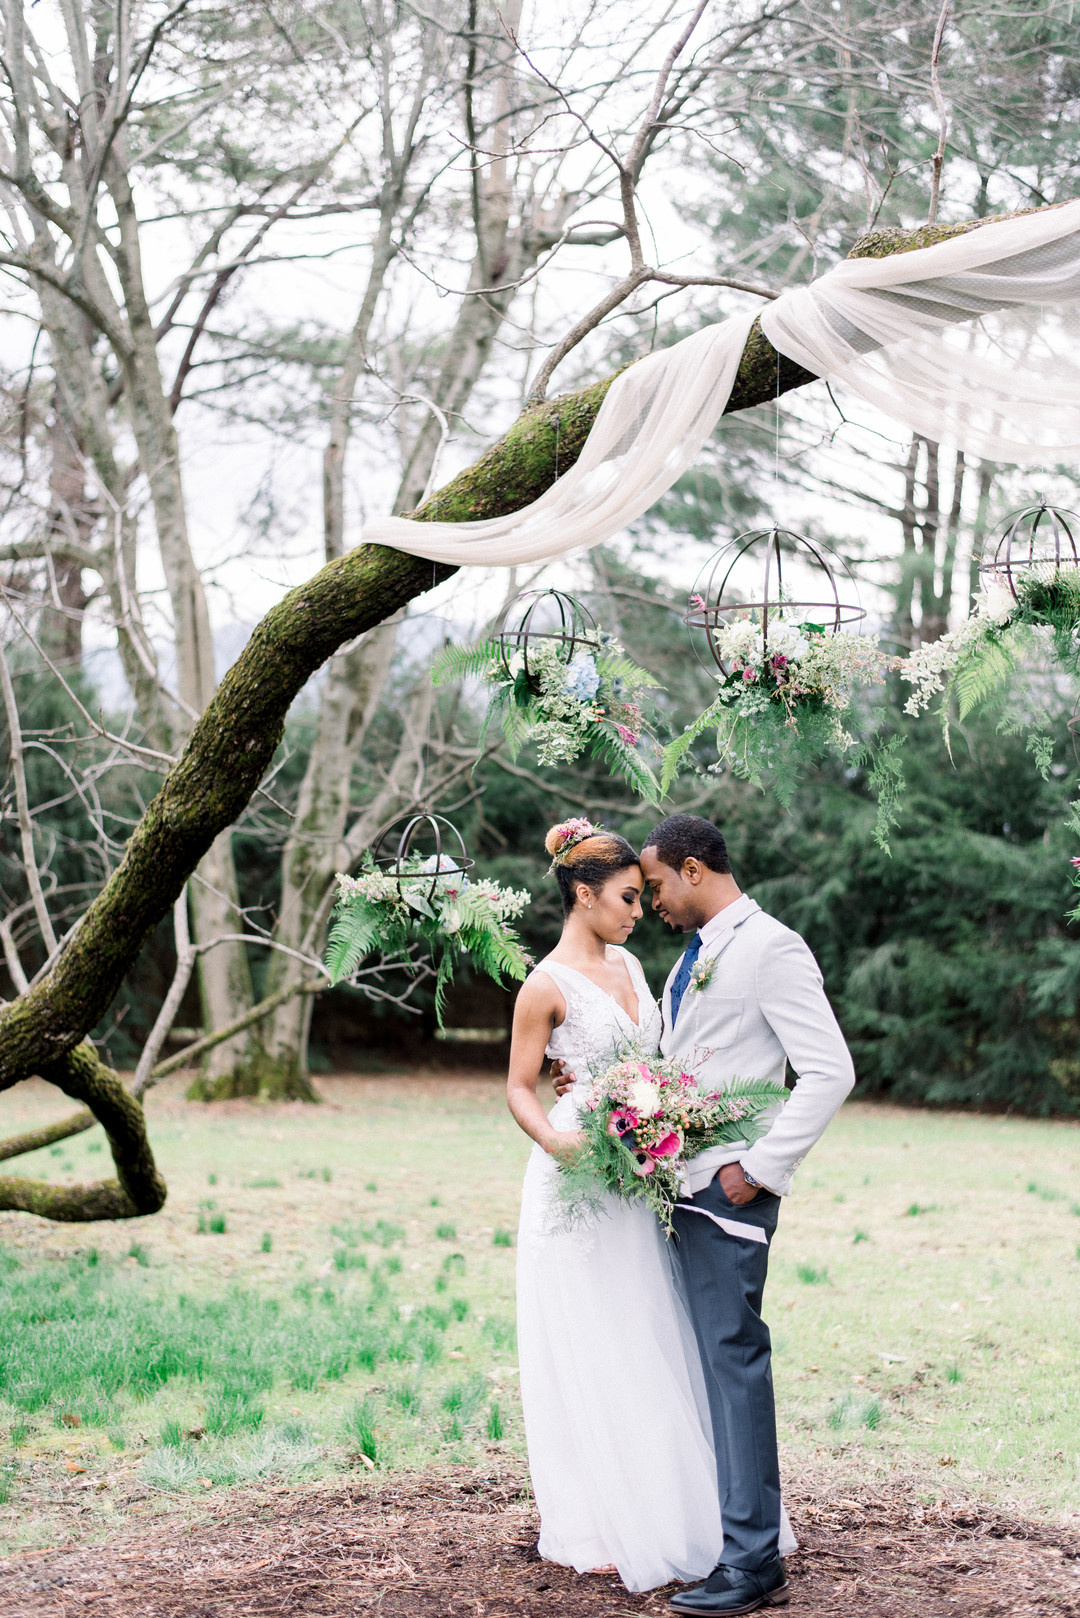 ti49qcohnkfsgg4dyb34_big Hot Springs, NC Wedding Inspiration at Mountain Magnolia Inn